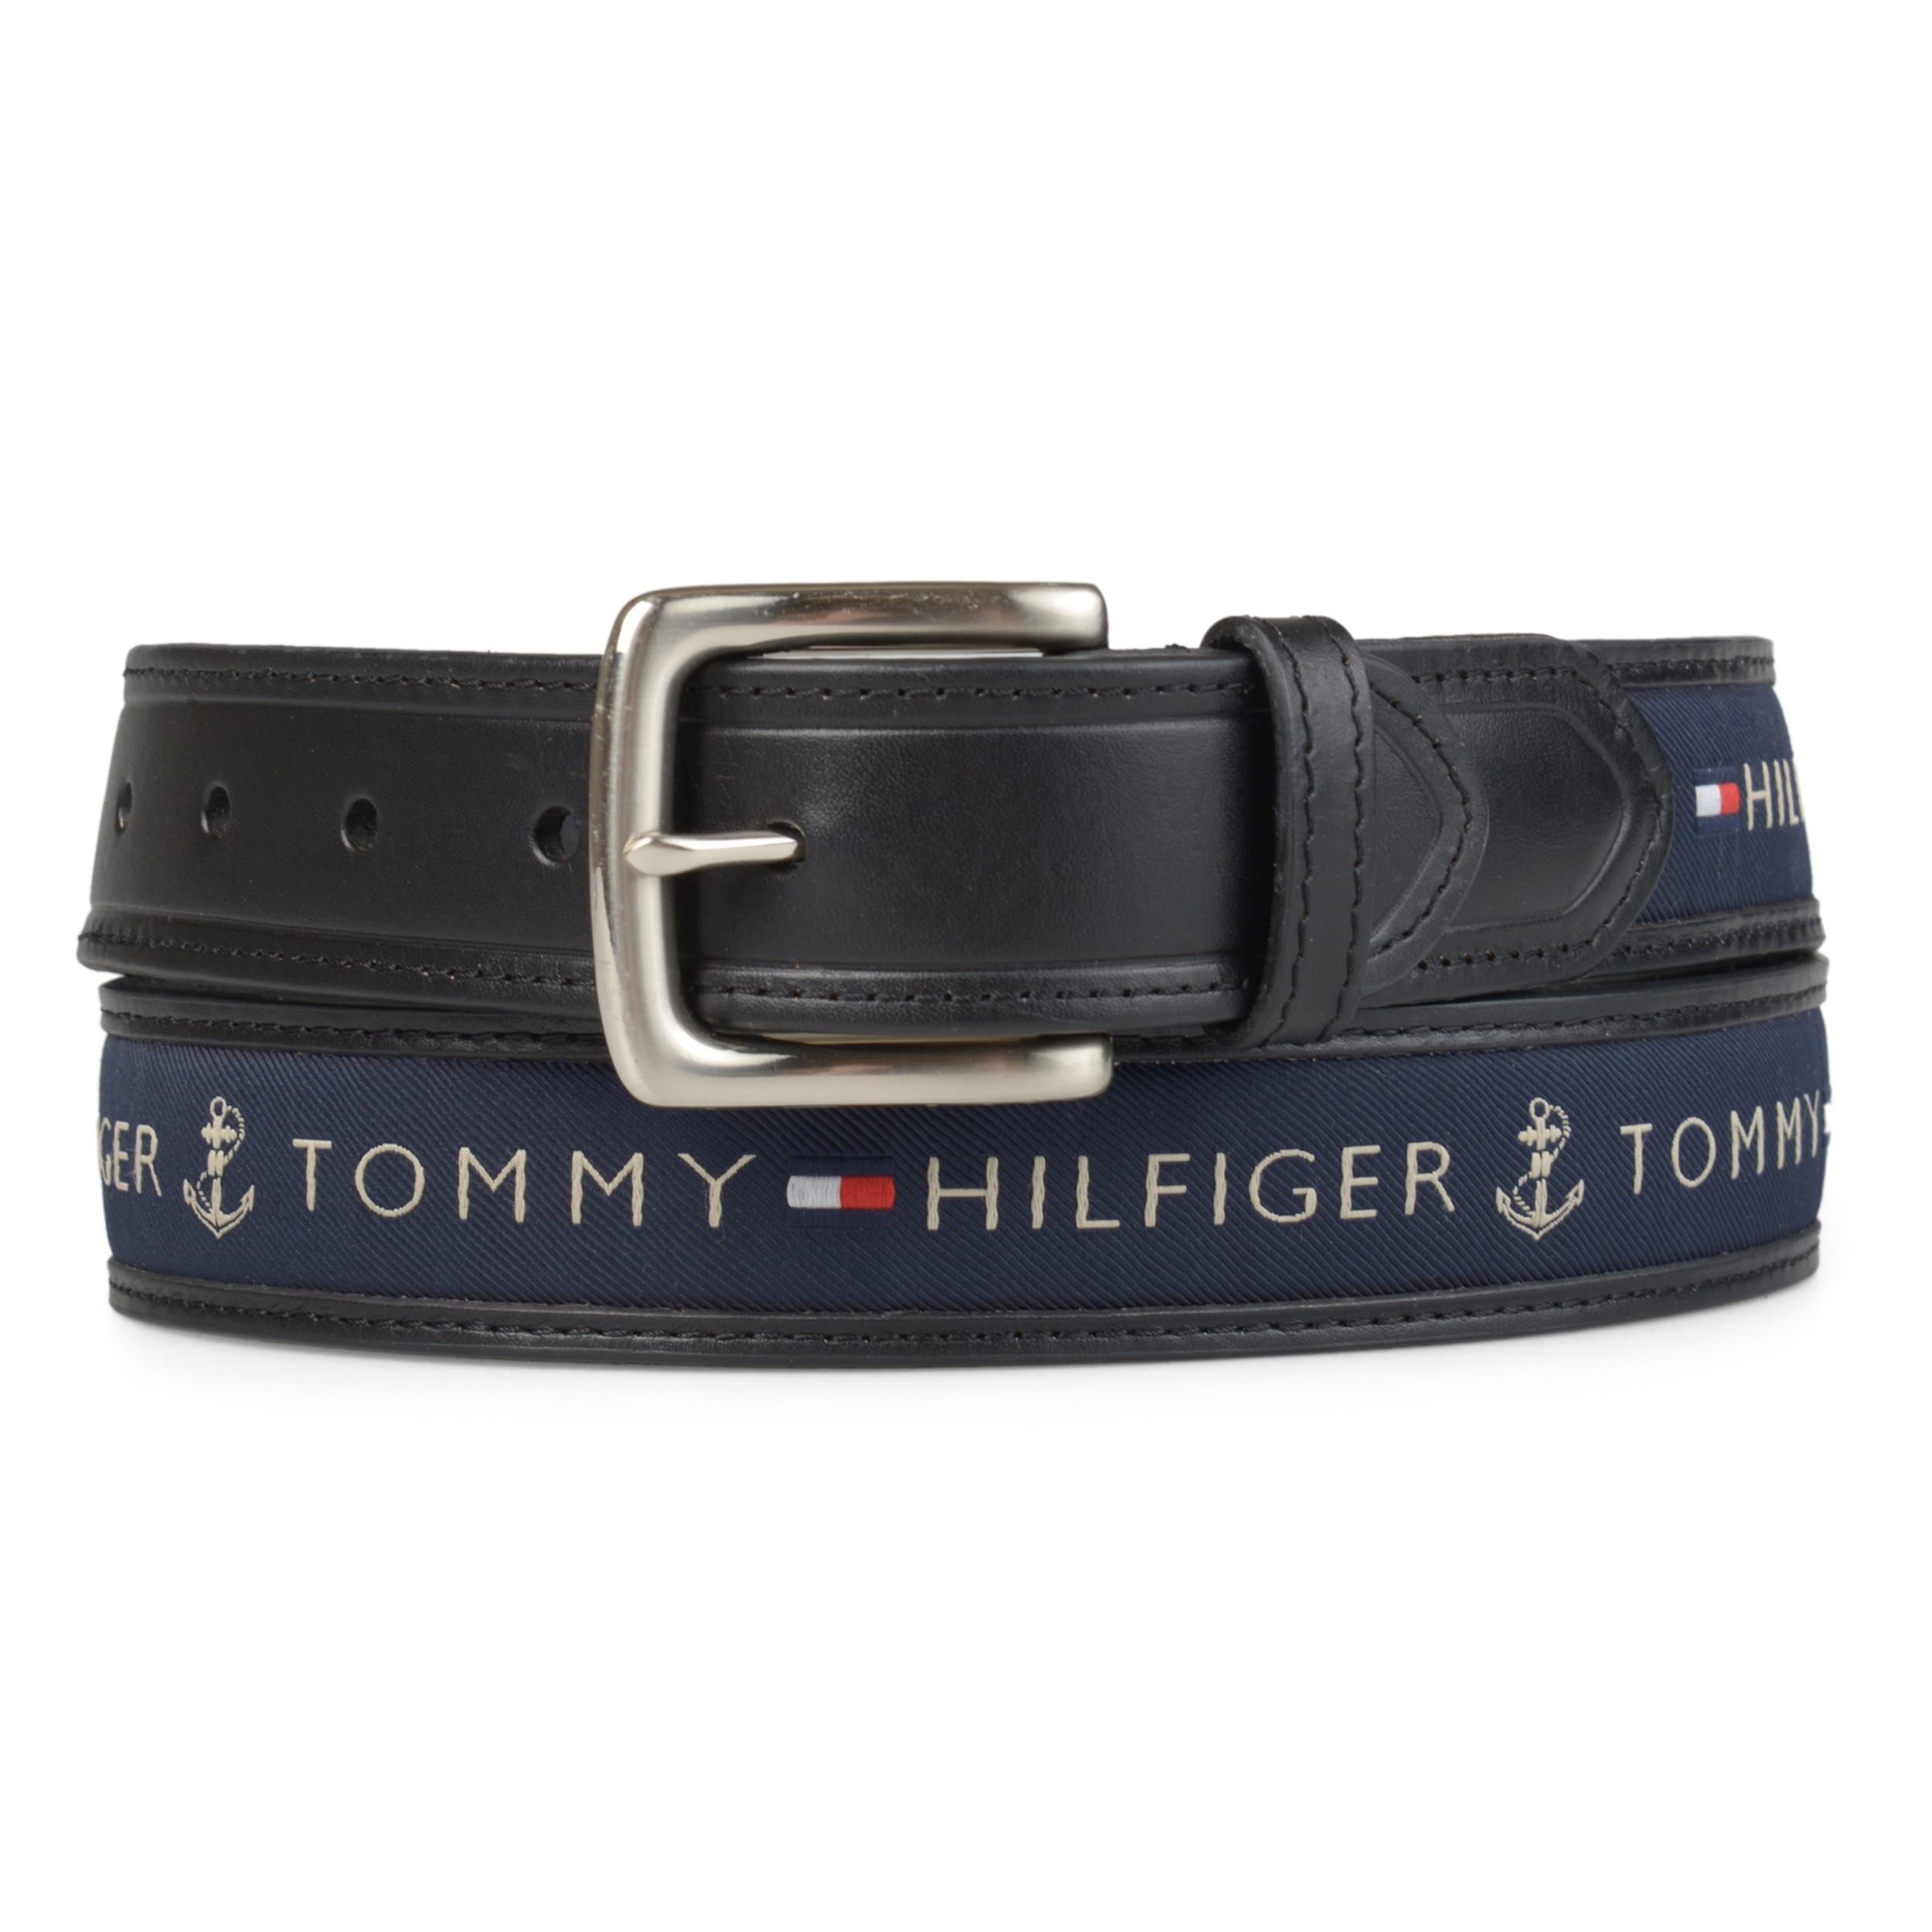 53aa05837dc0 Shop Tommy Hilfiger Men s Topstitched Leather Belt - Free Shipping ...